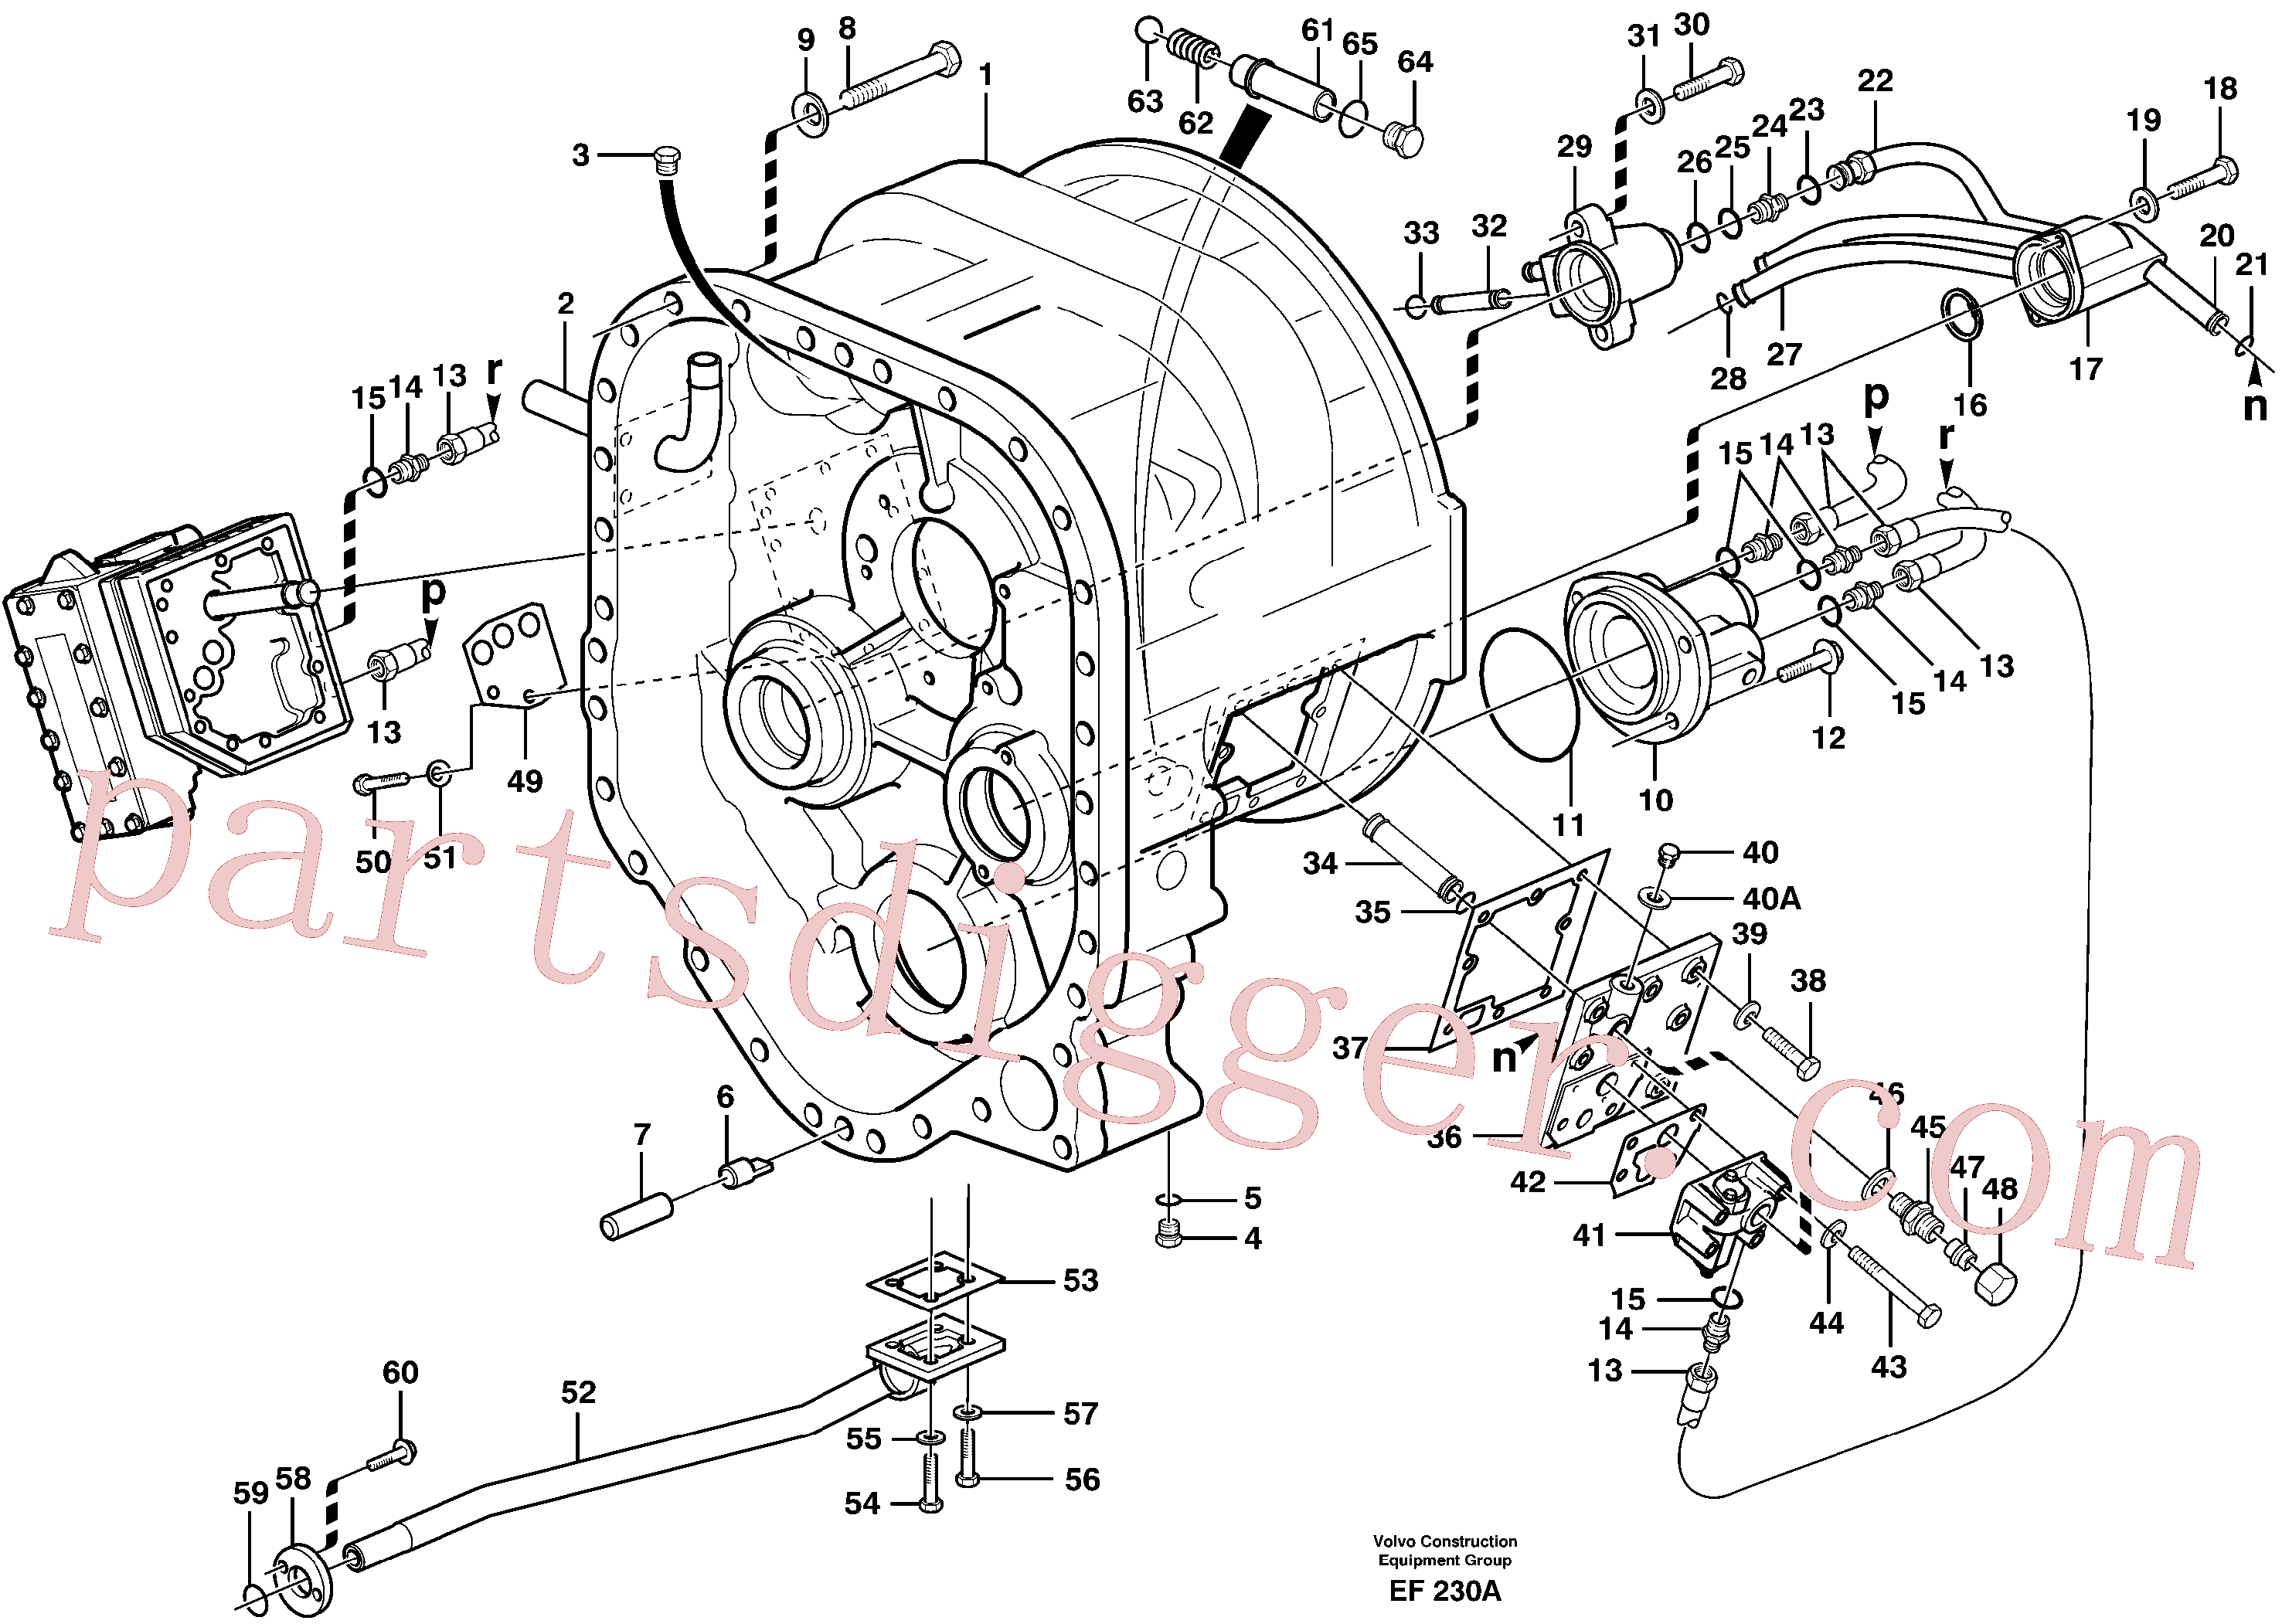 VOE925263 for Volvo Converter housing with fitting parts(EF230A assembly)